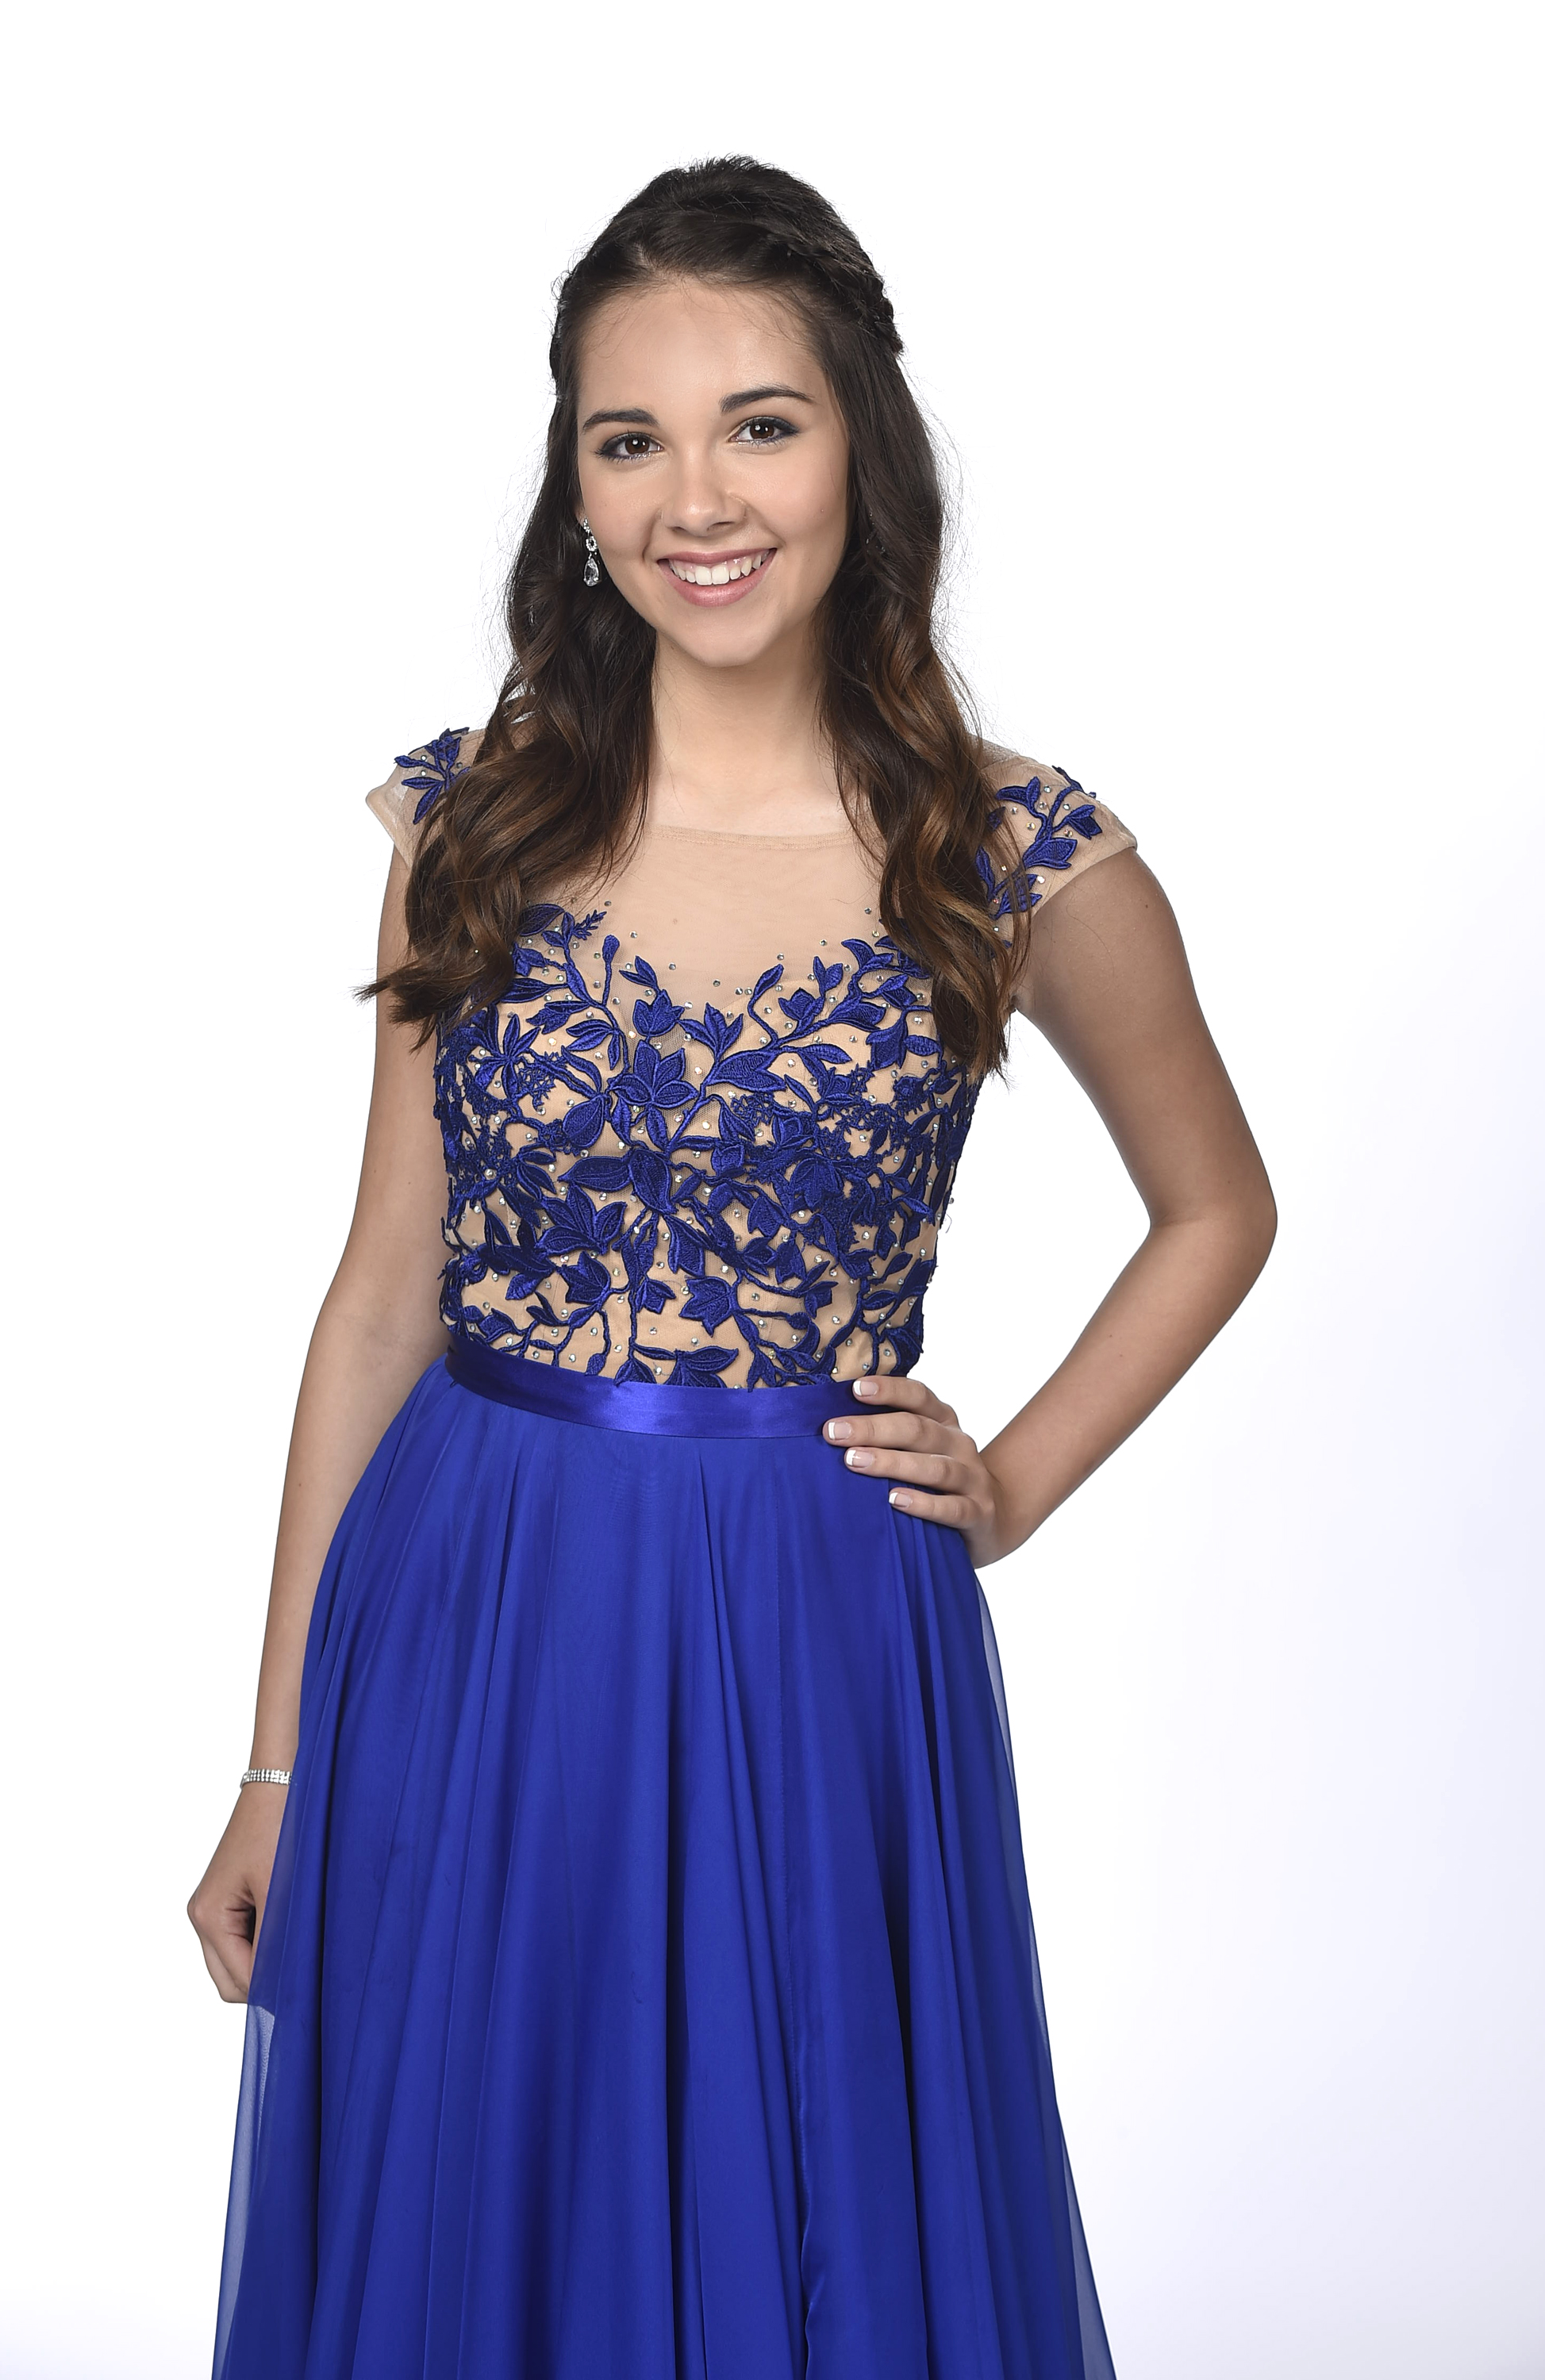 haley pullos net worthhaley pullos wiki, haley pullos height, haley pullos instagram, haley pullos twitter, haley pullos facebook, haley pullos leaving general hospital, haley pullos bikini, haley pullos feet, haley pullos fansite, haley pullos boyfriend, haley pullos 2015, haley pullos age, haley pullos net worth, haley pullos sister, haley pullos imdb, haley pullos instant mom, haley pullos dating, haley pullos gh, haley pullos parents, haley pullos snapchat